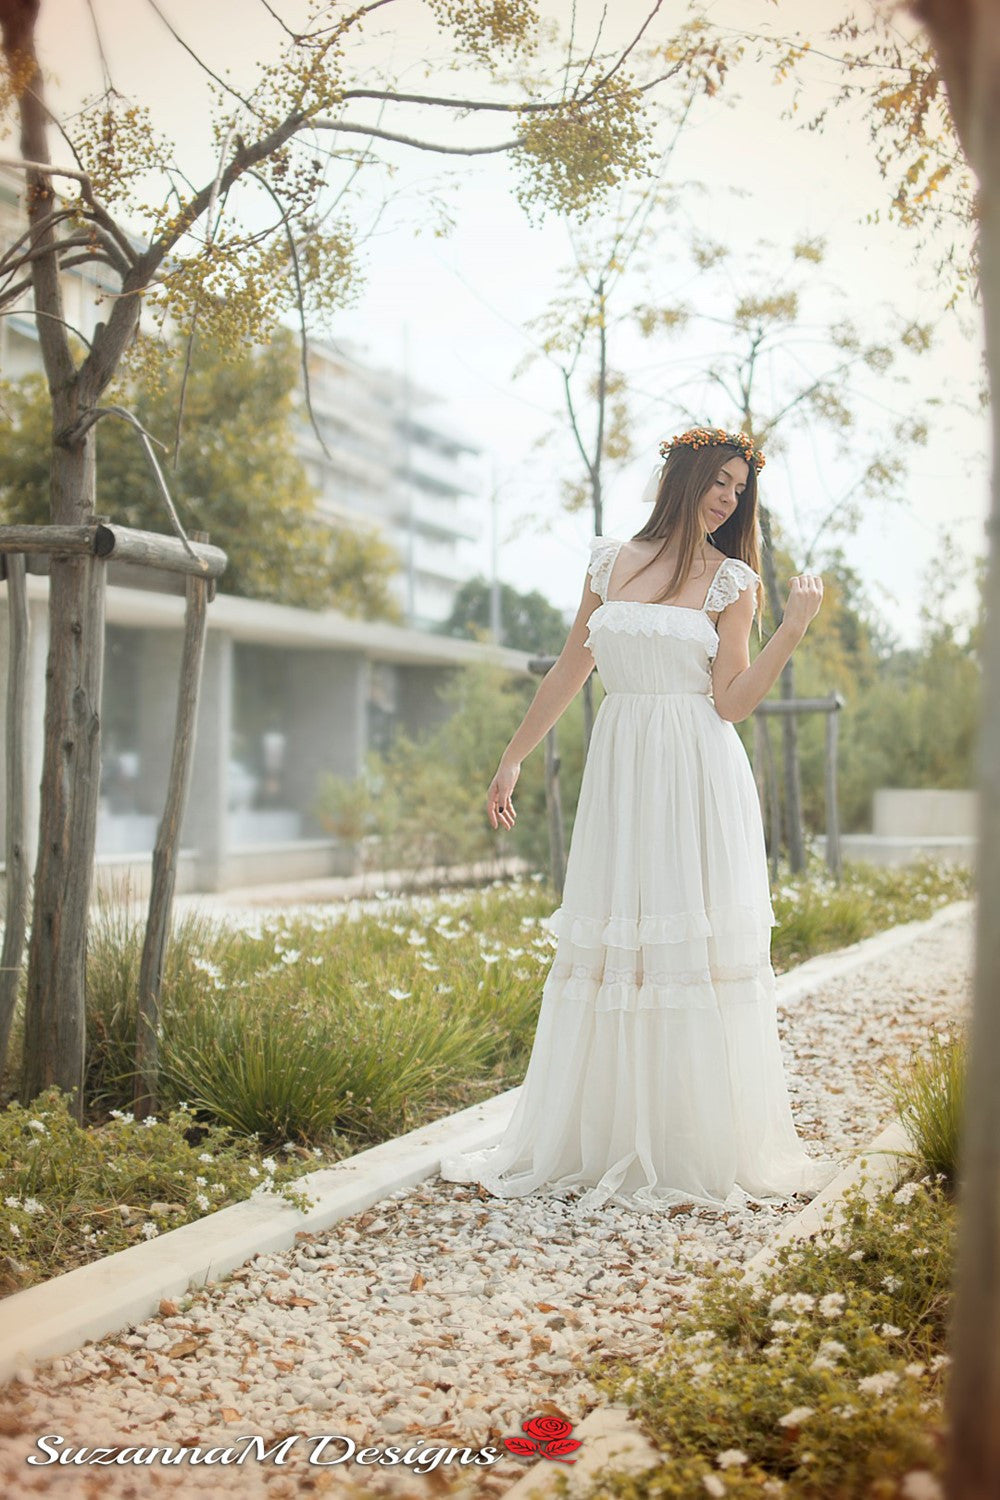 Agostina Handmade Gypsy Wedding Dress